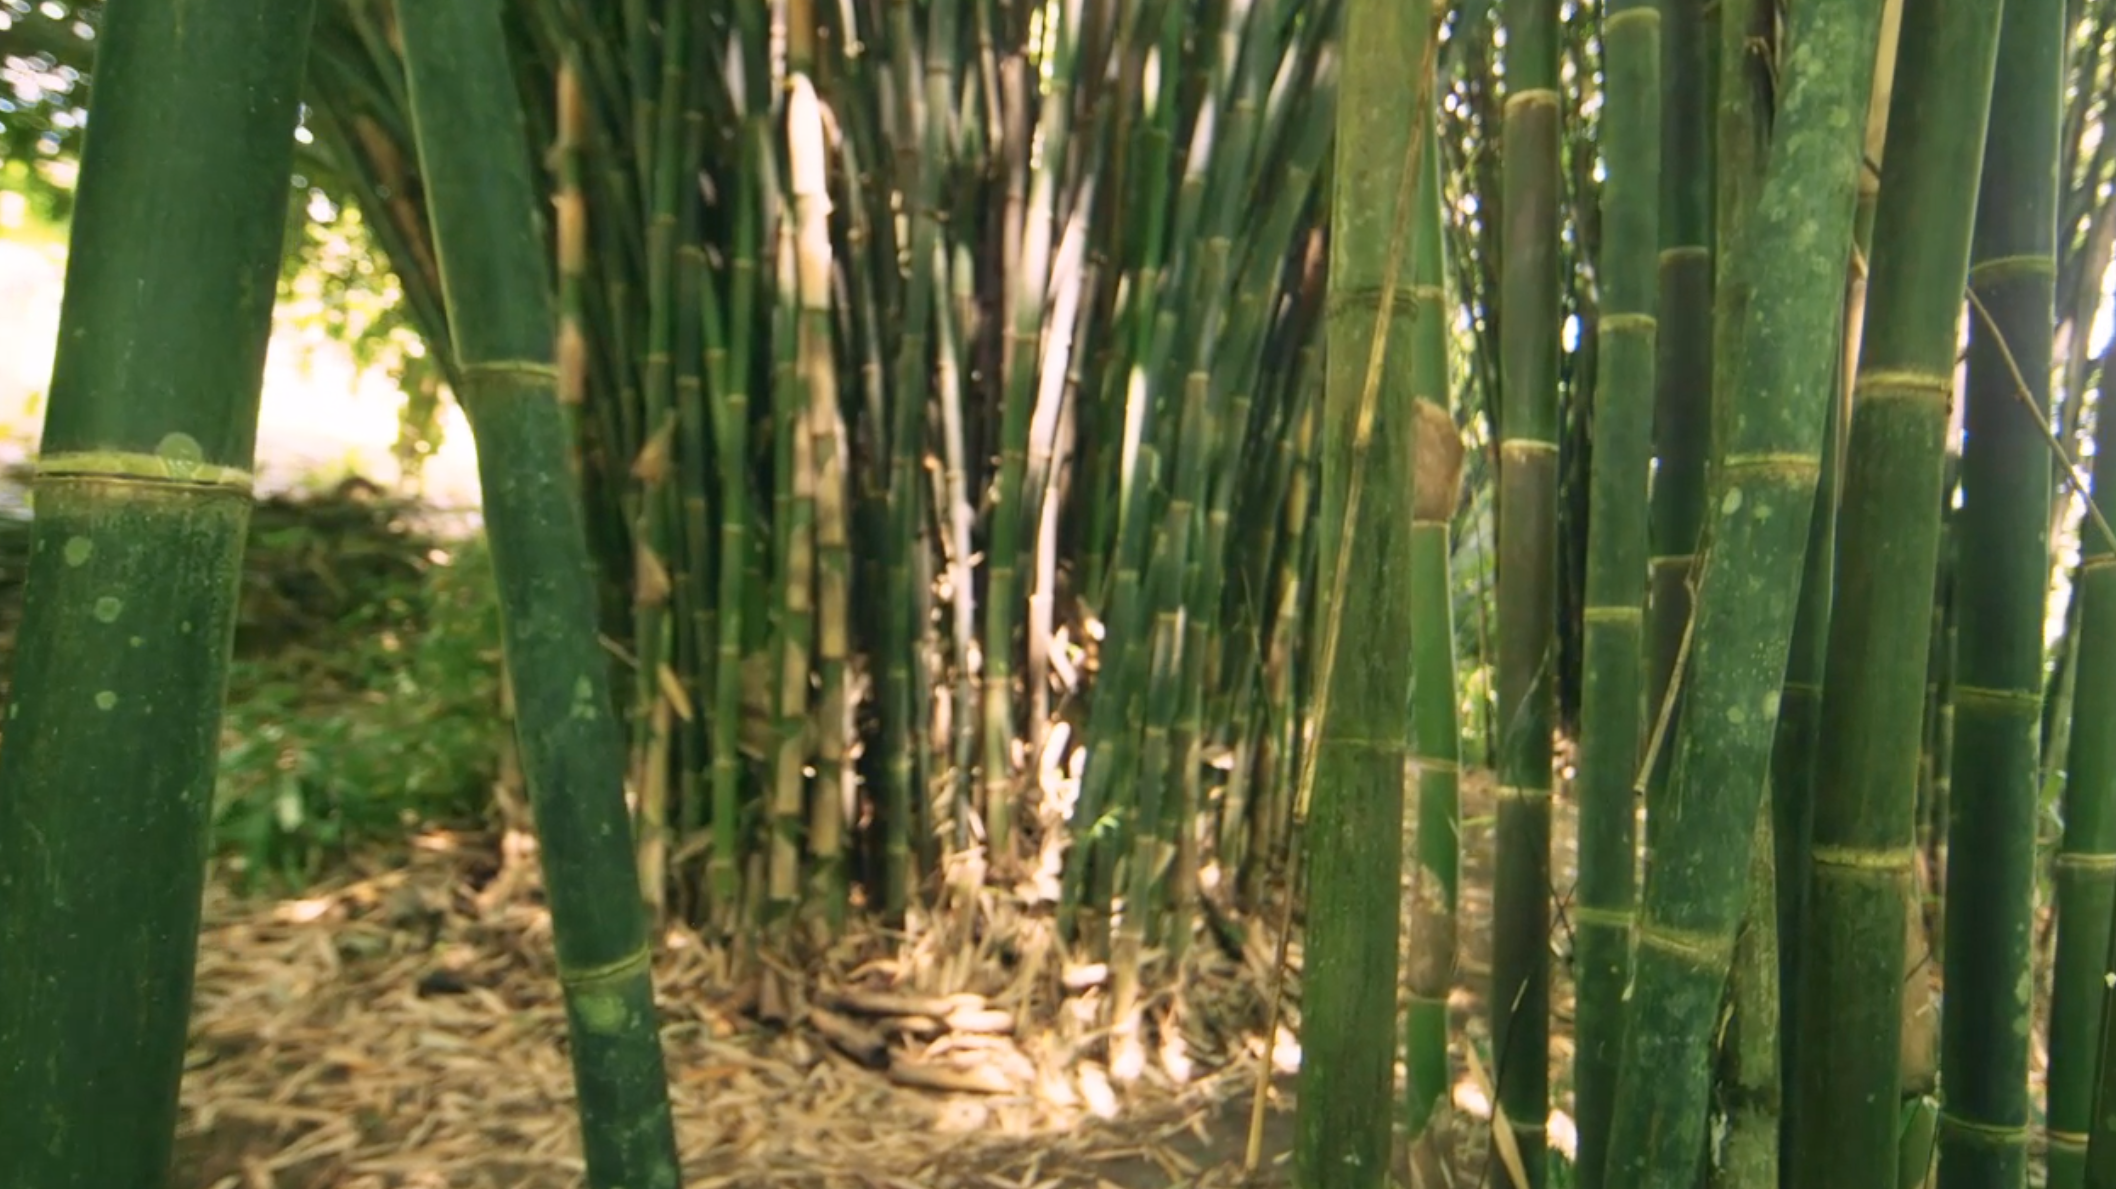 The Timber of the 21st Century<br><em>EcoPlanet Bamboo</em>